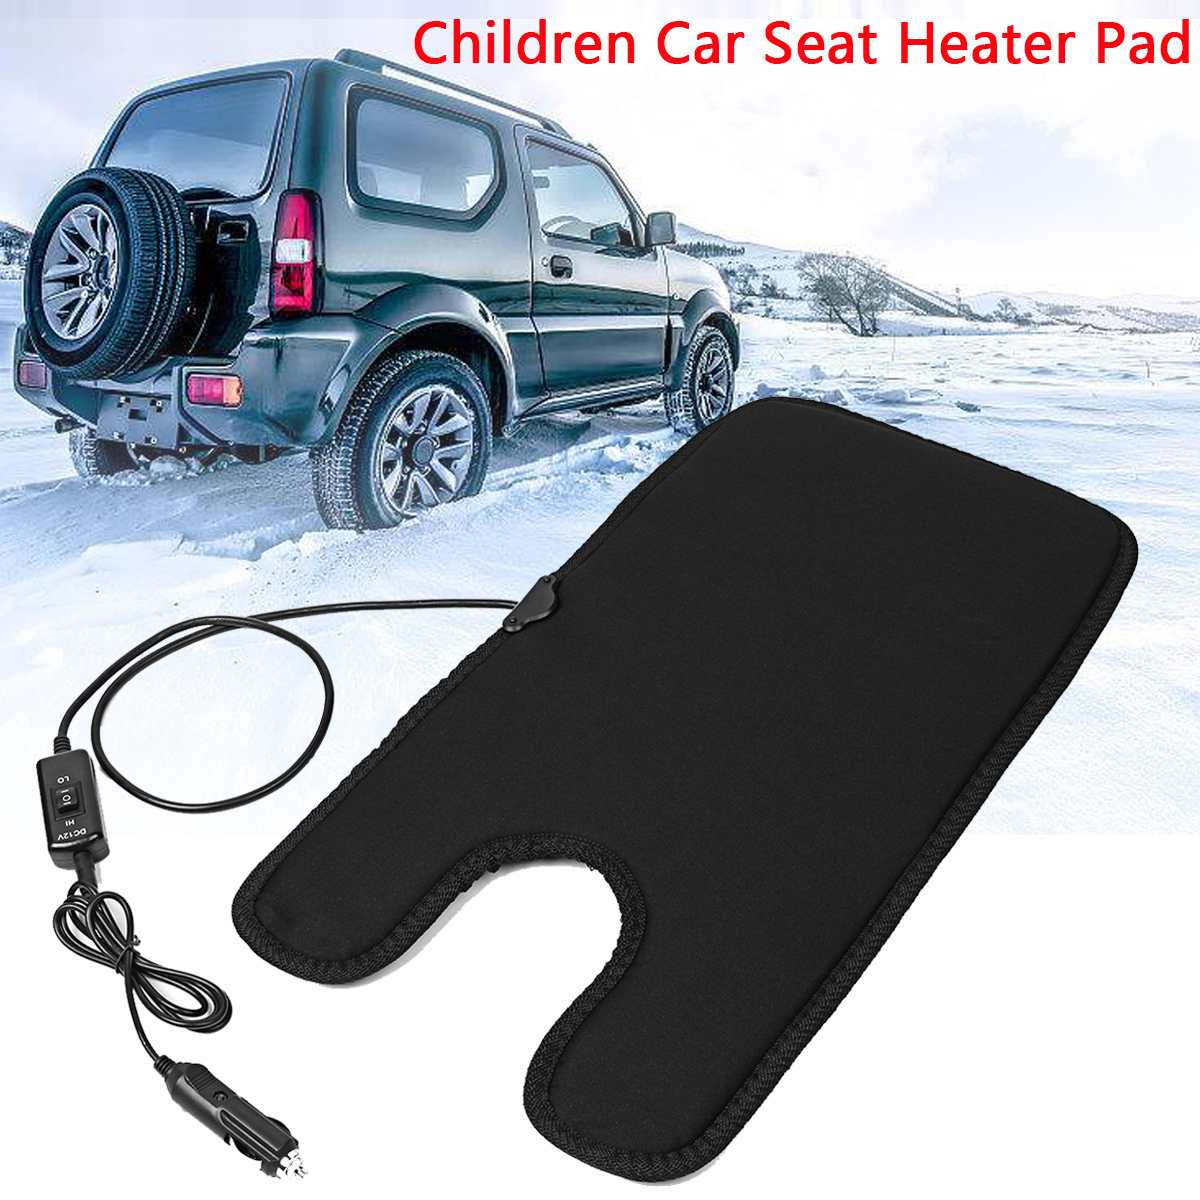 Universal 12V Auto Baby Winter Car Seat Cover Children Warm Seat Heating with Lighter and Switch 50x27cm